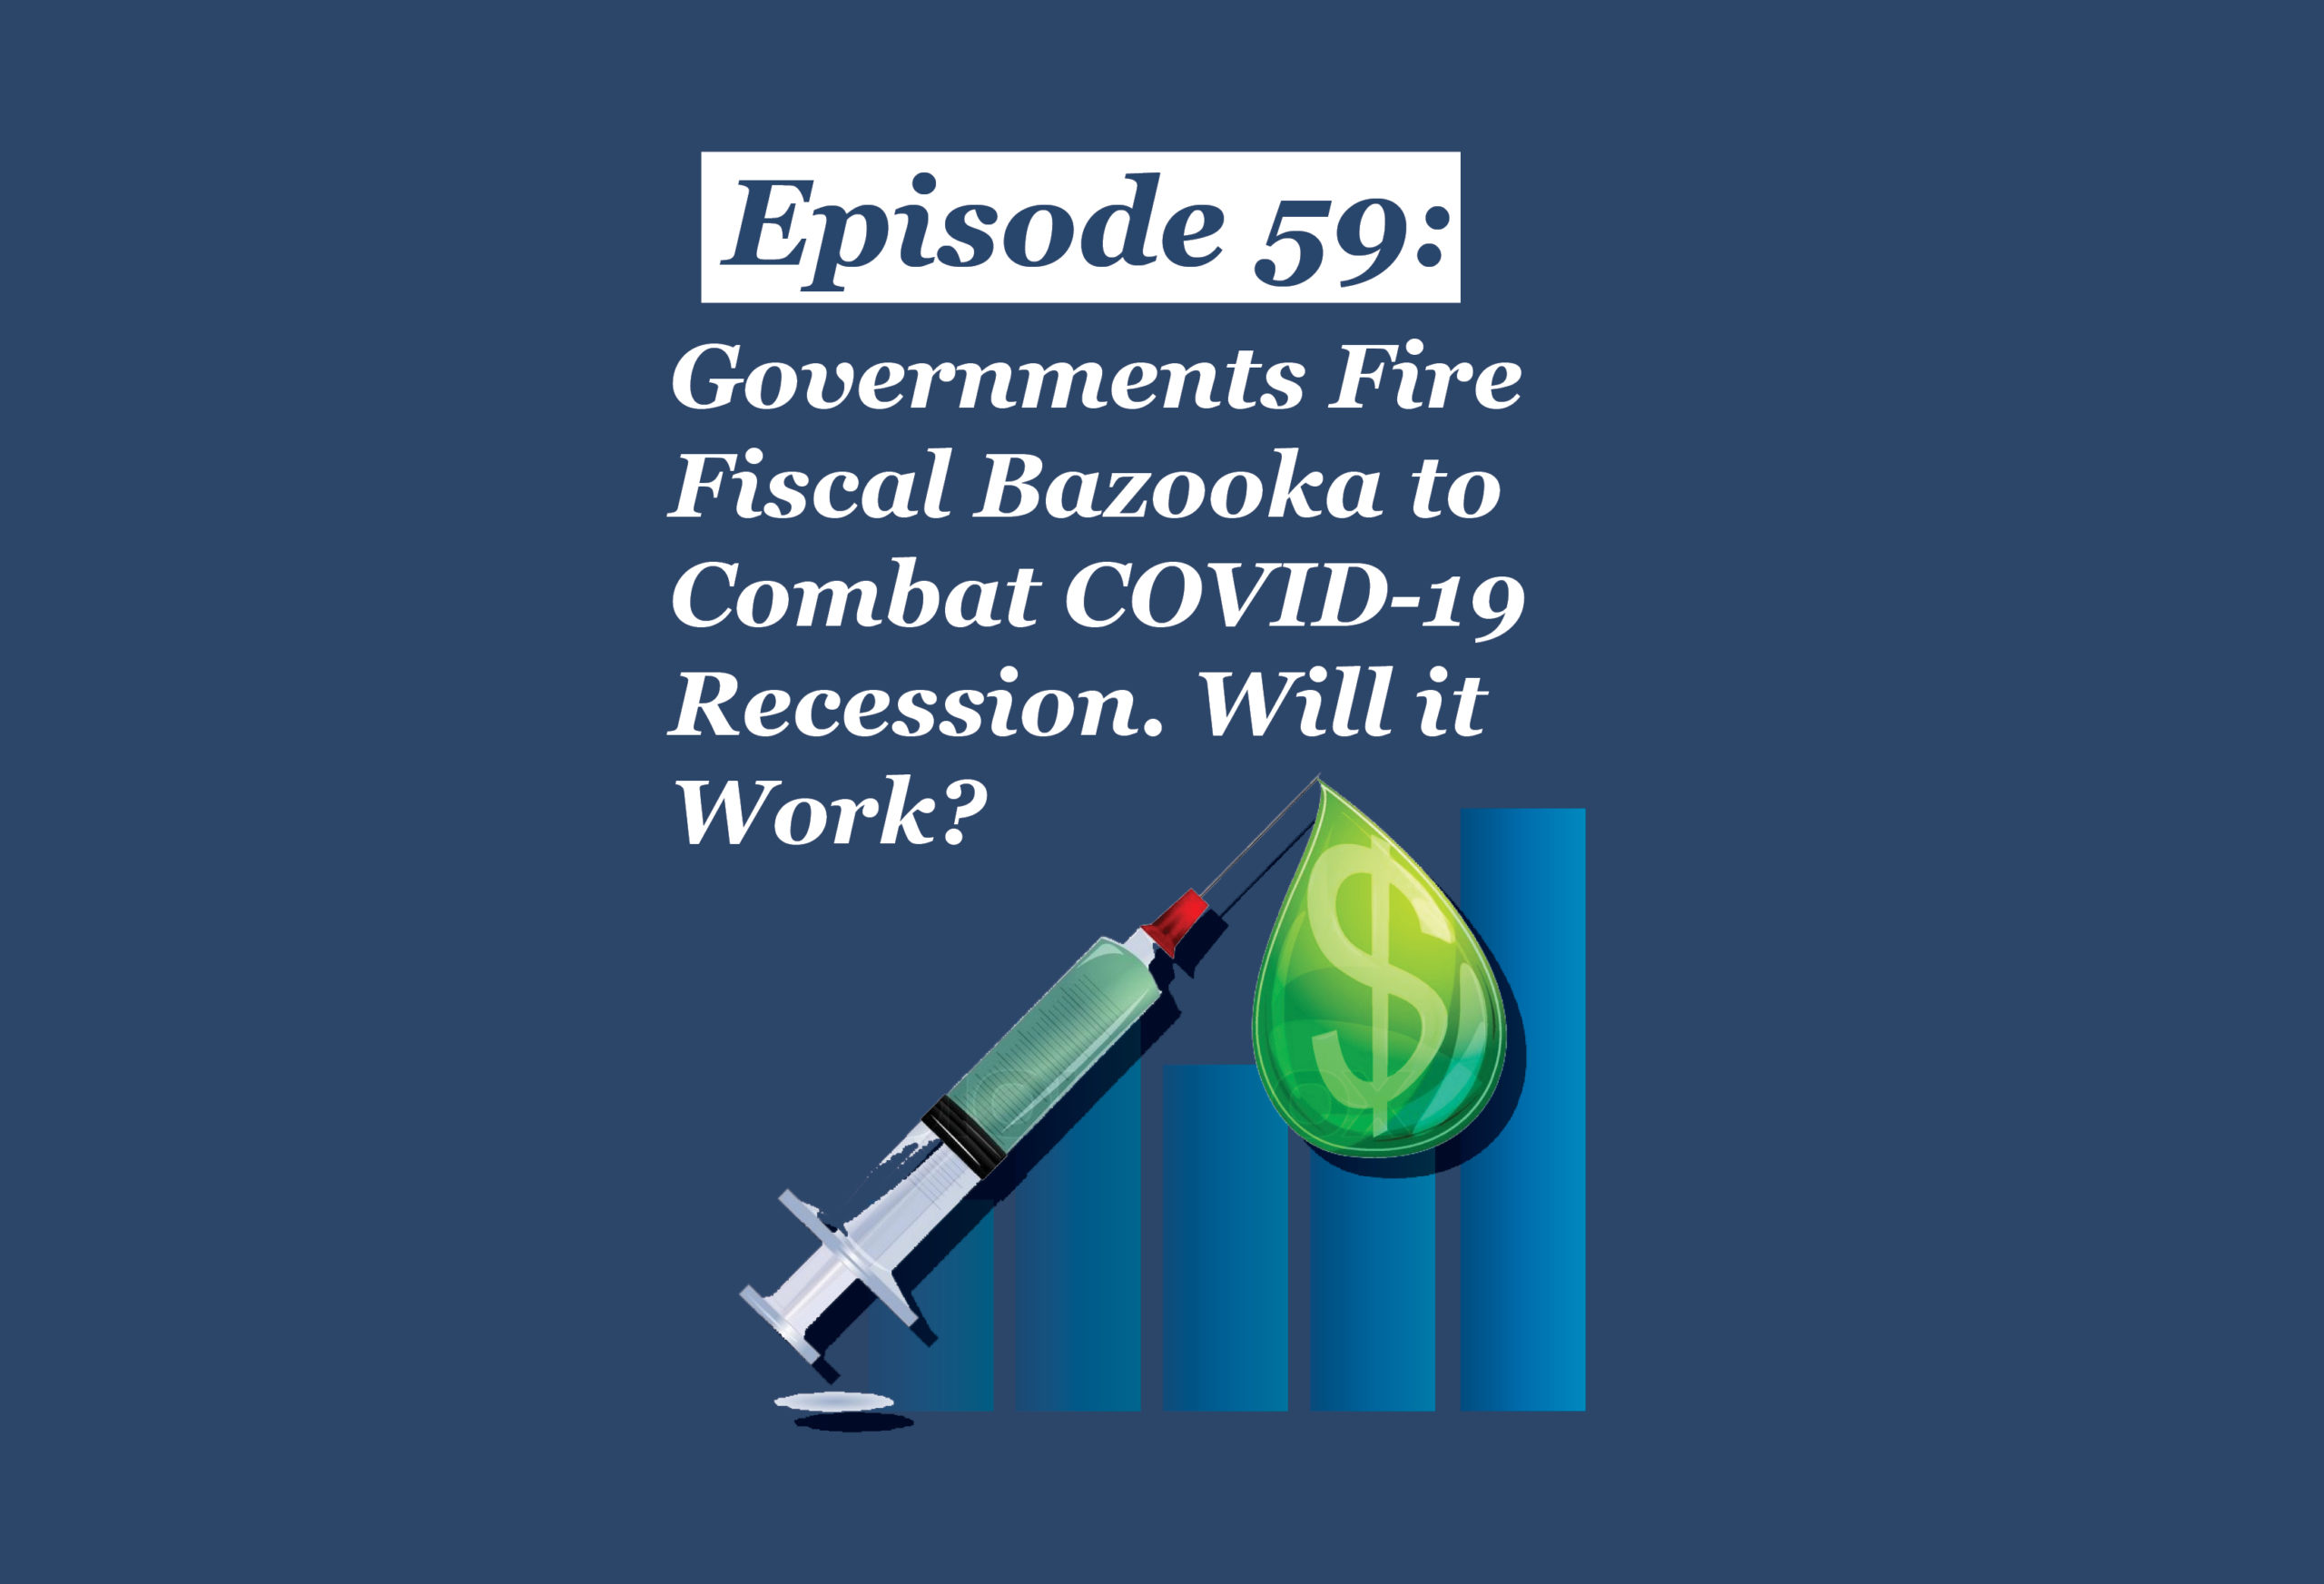 Absolute Return Podcast #59: Governments Fire Fiscal Bazooka to Combat COVID-19 Recession. Will it Work?